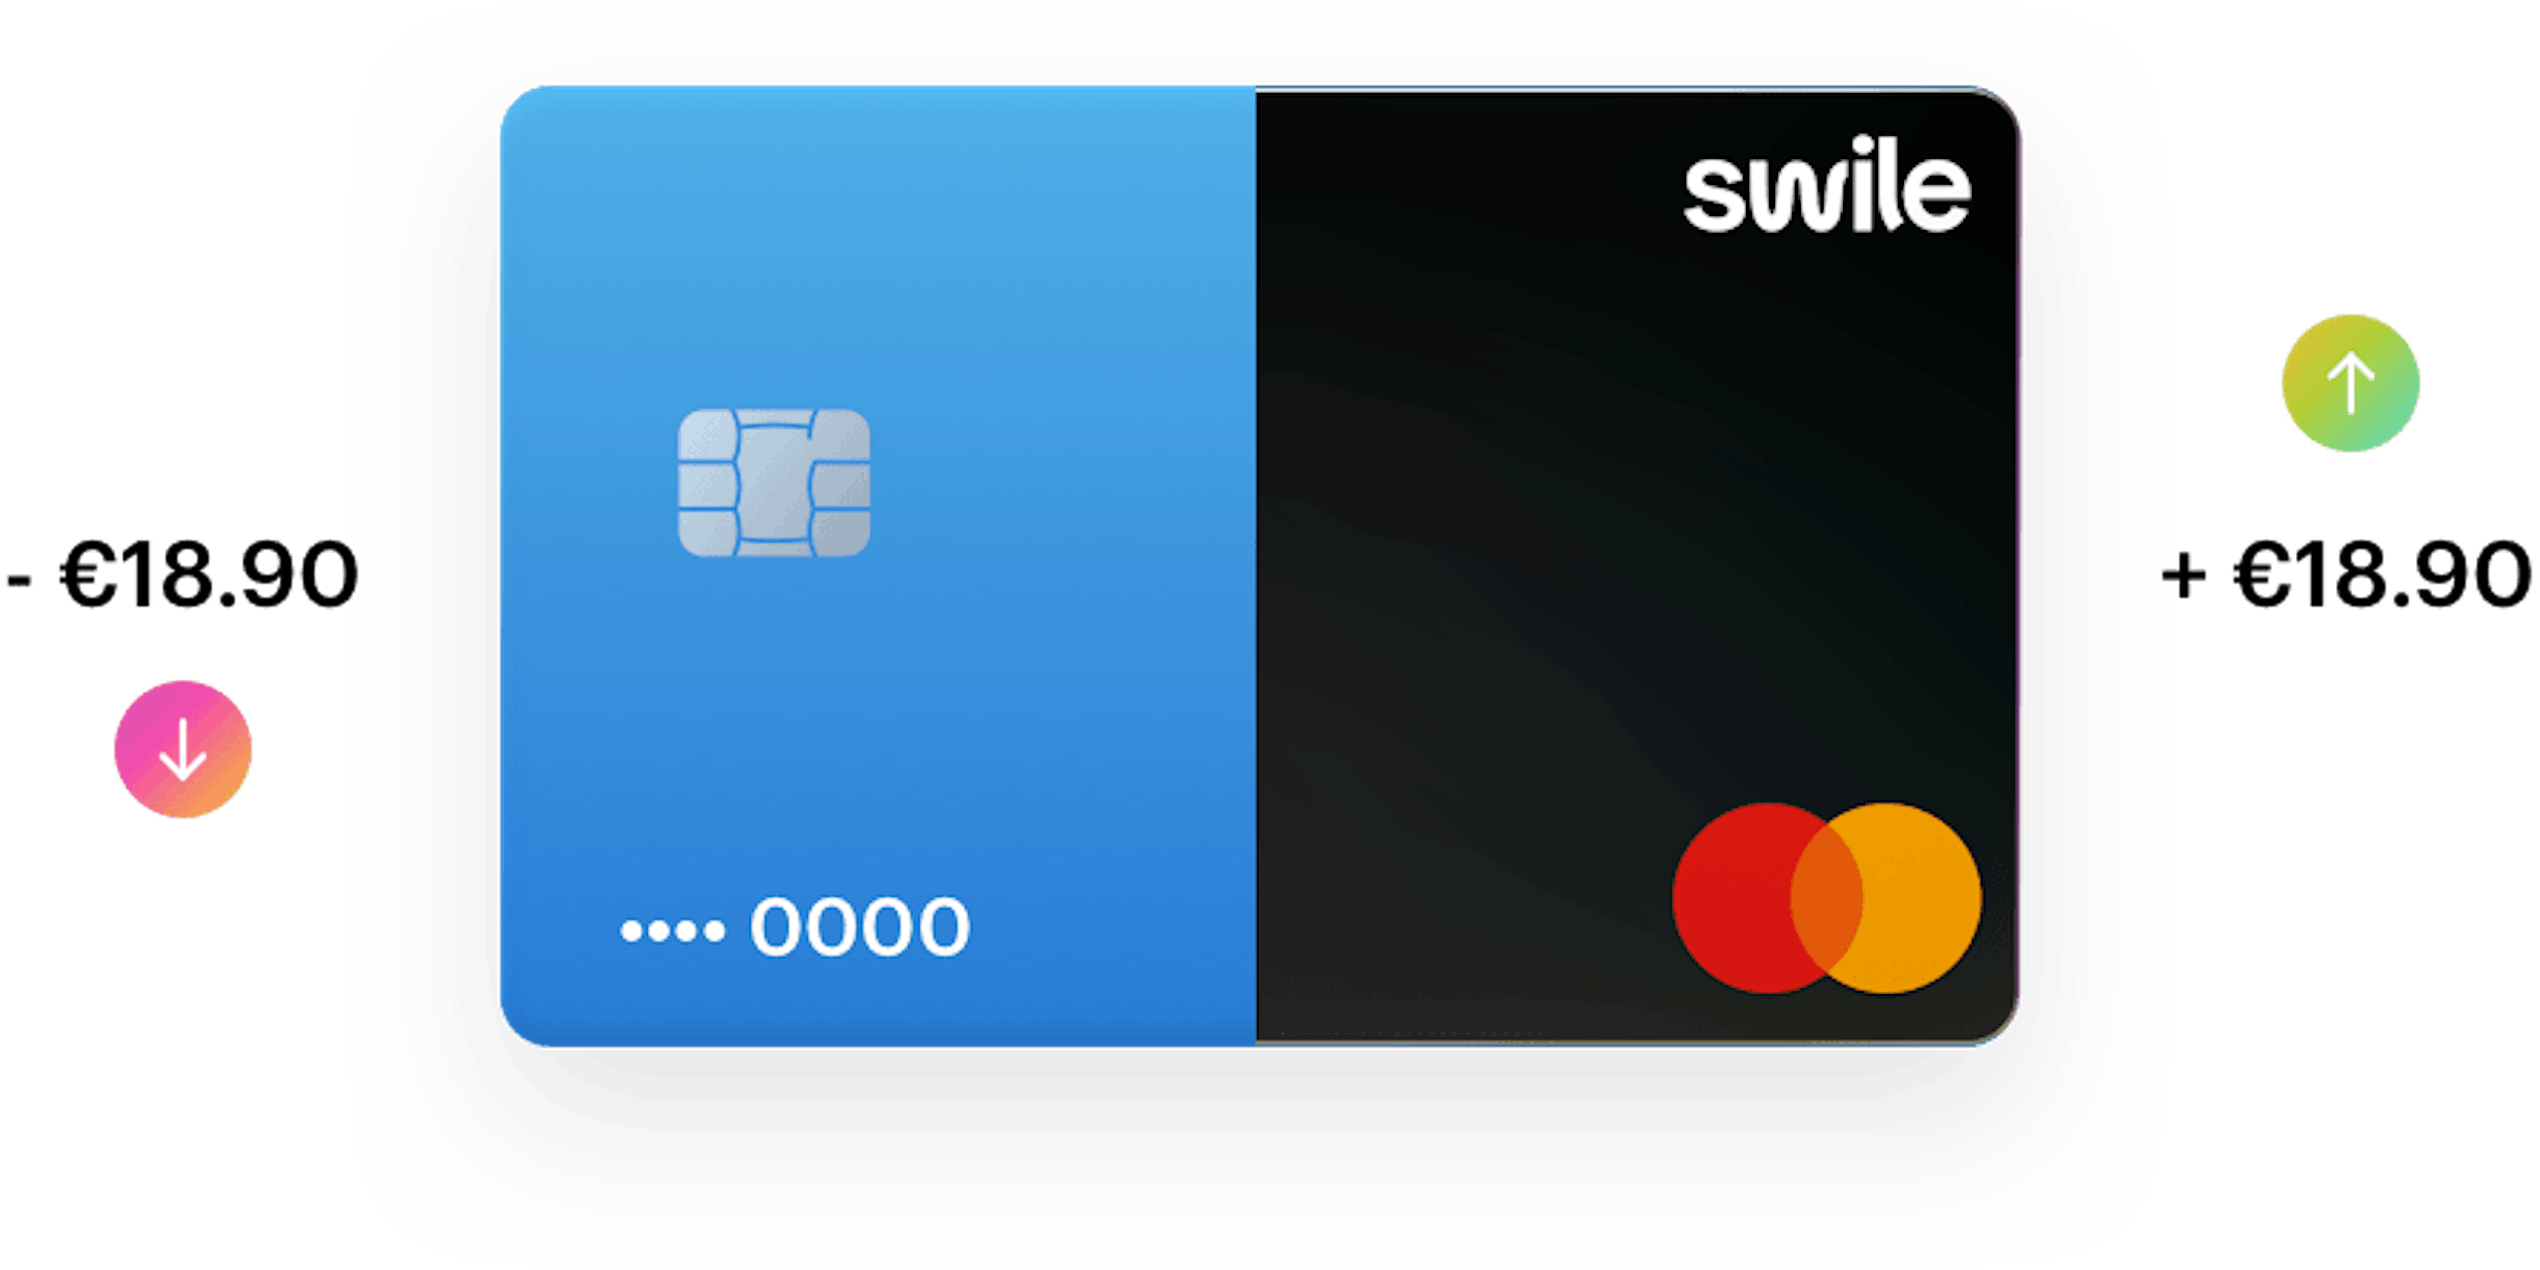 Pay with your bank card, get reimbursed.